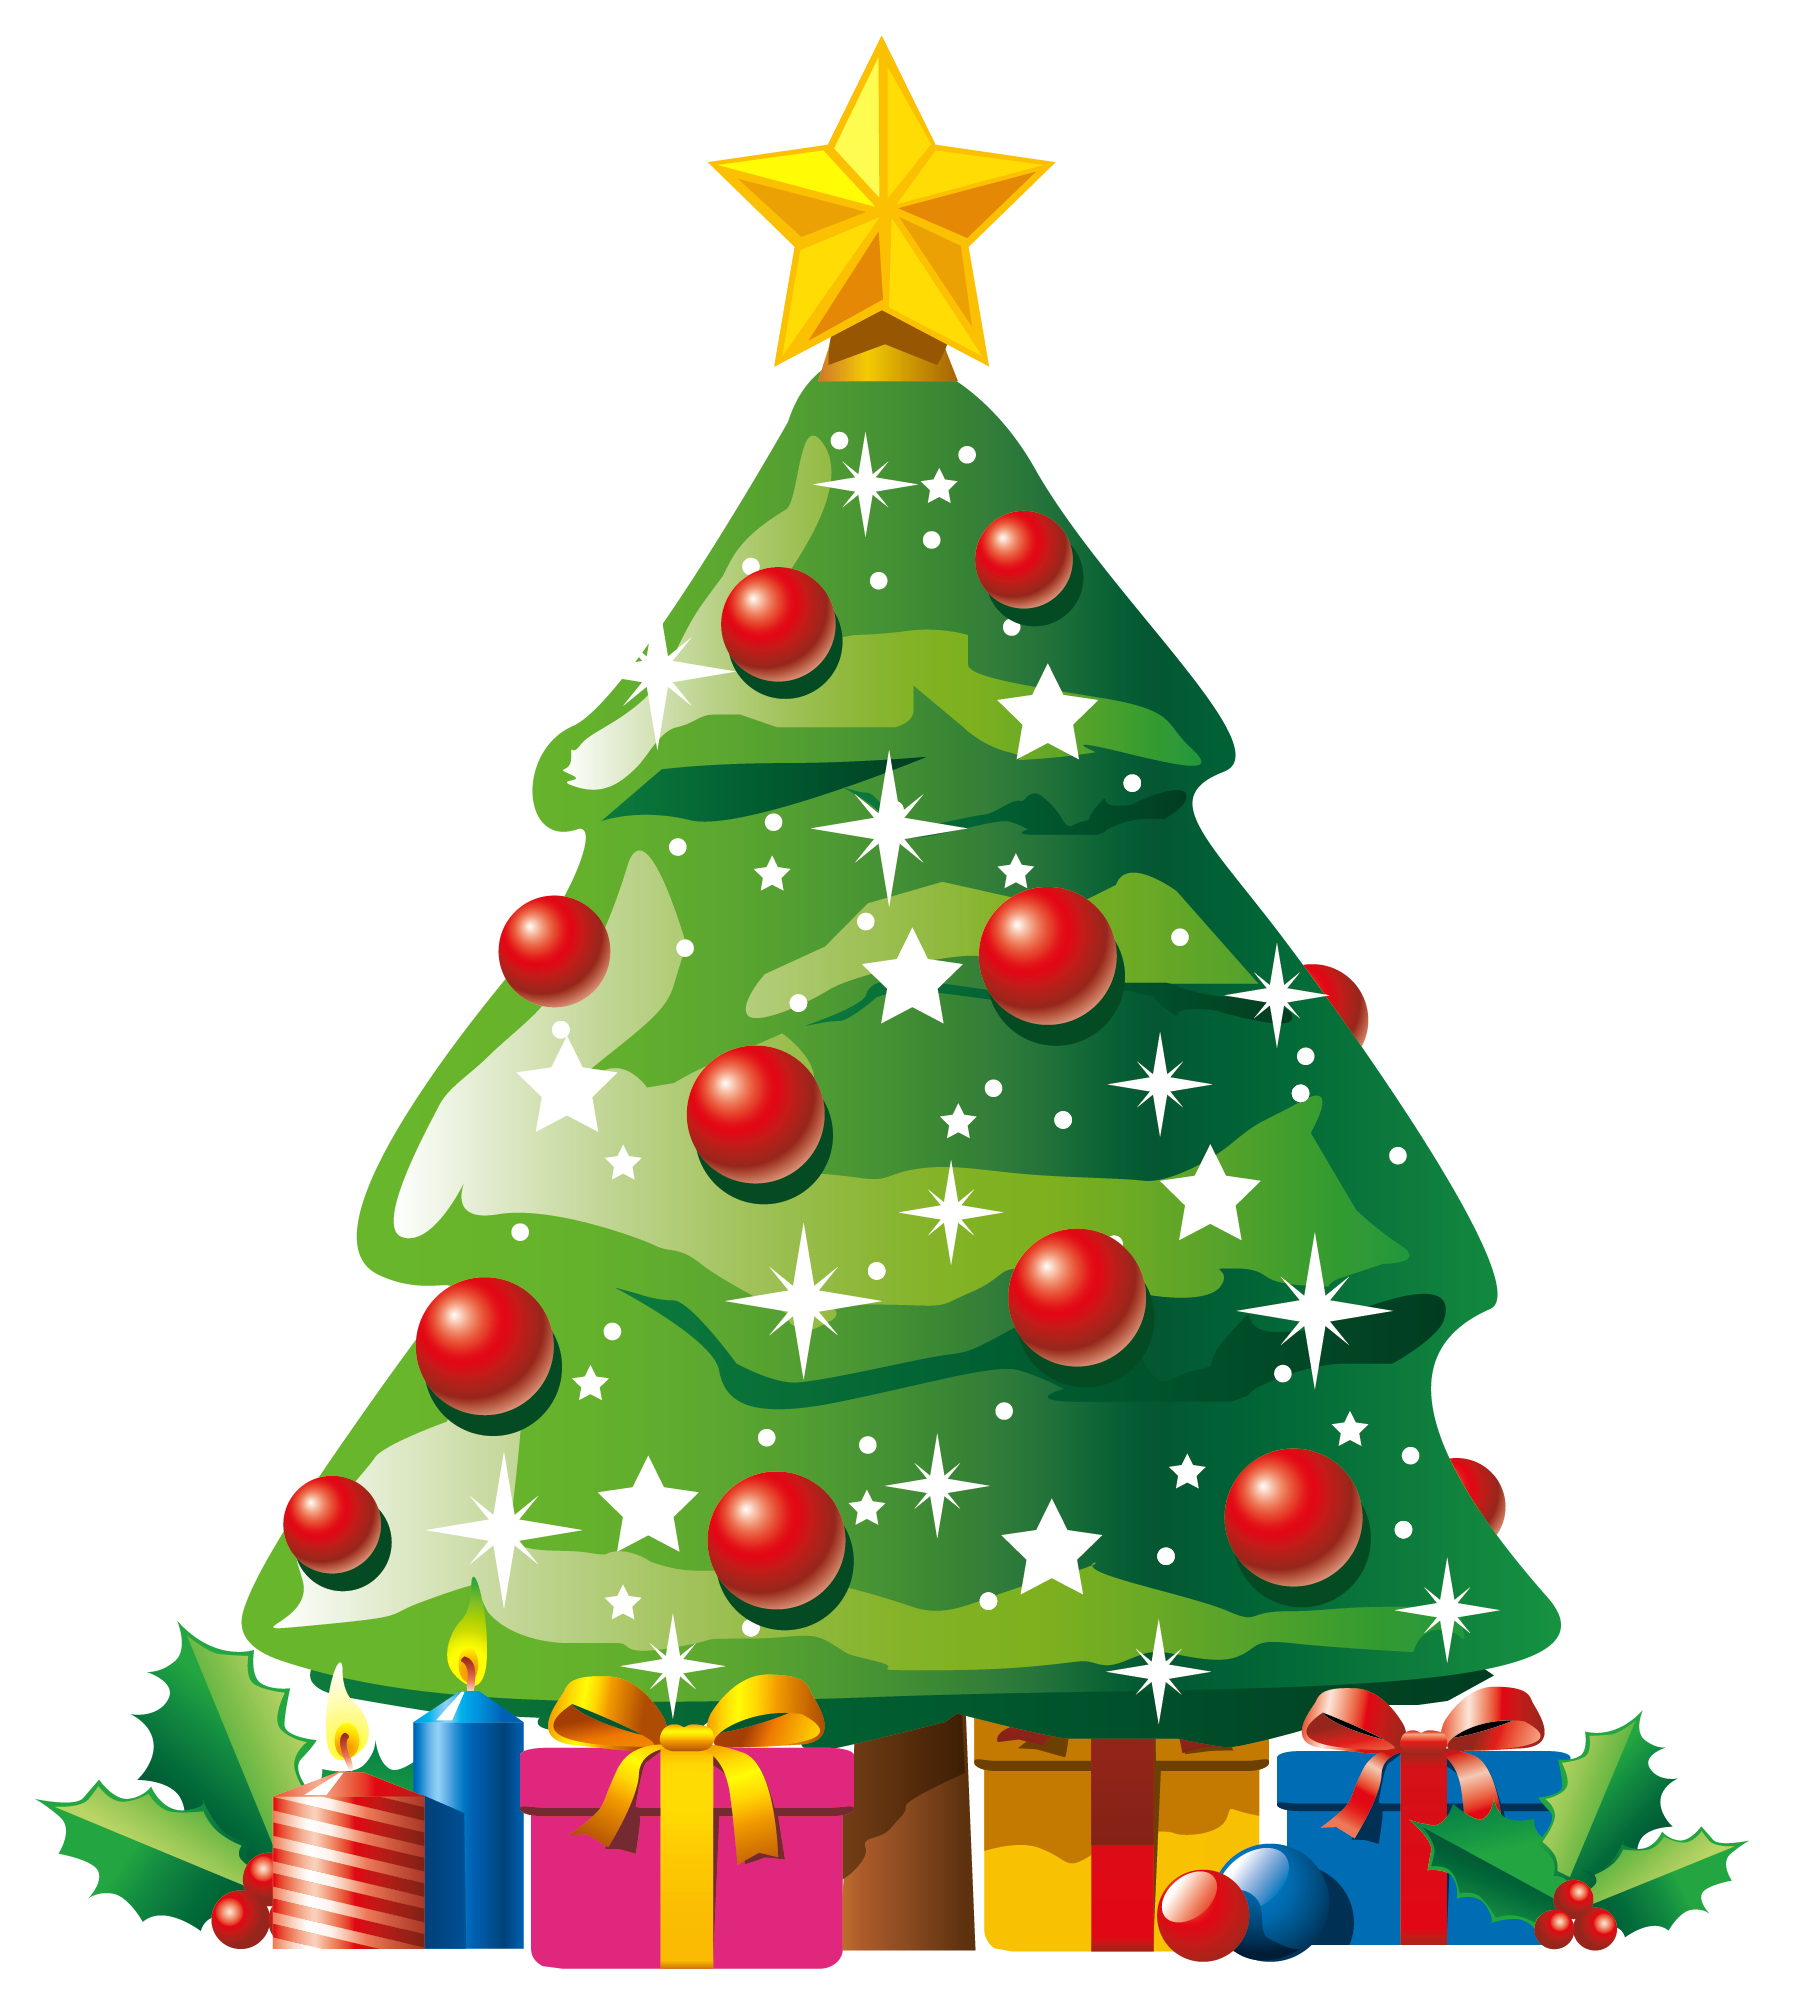 Christmas ornaments shadow png. Transparent deco tree with